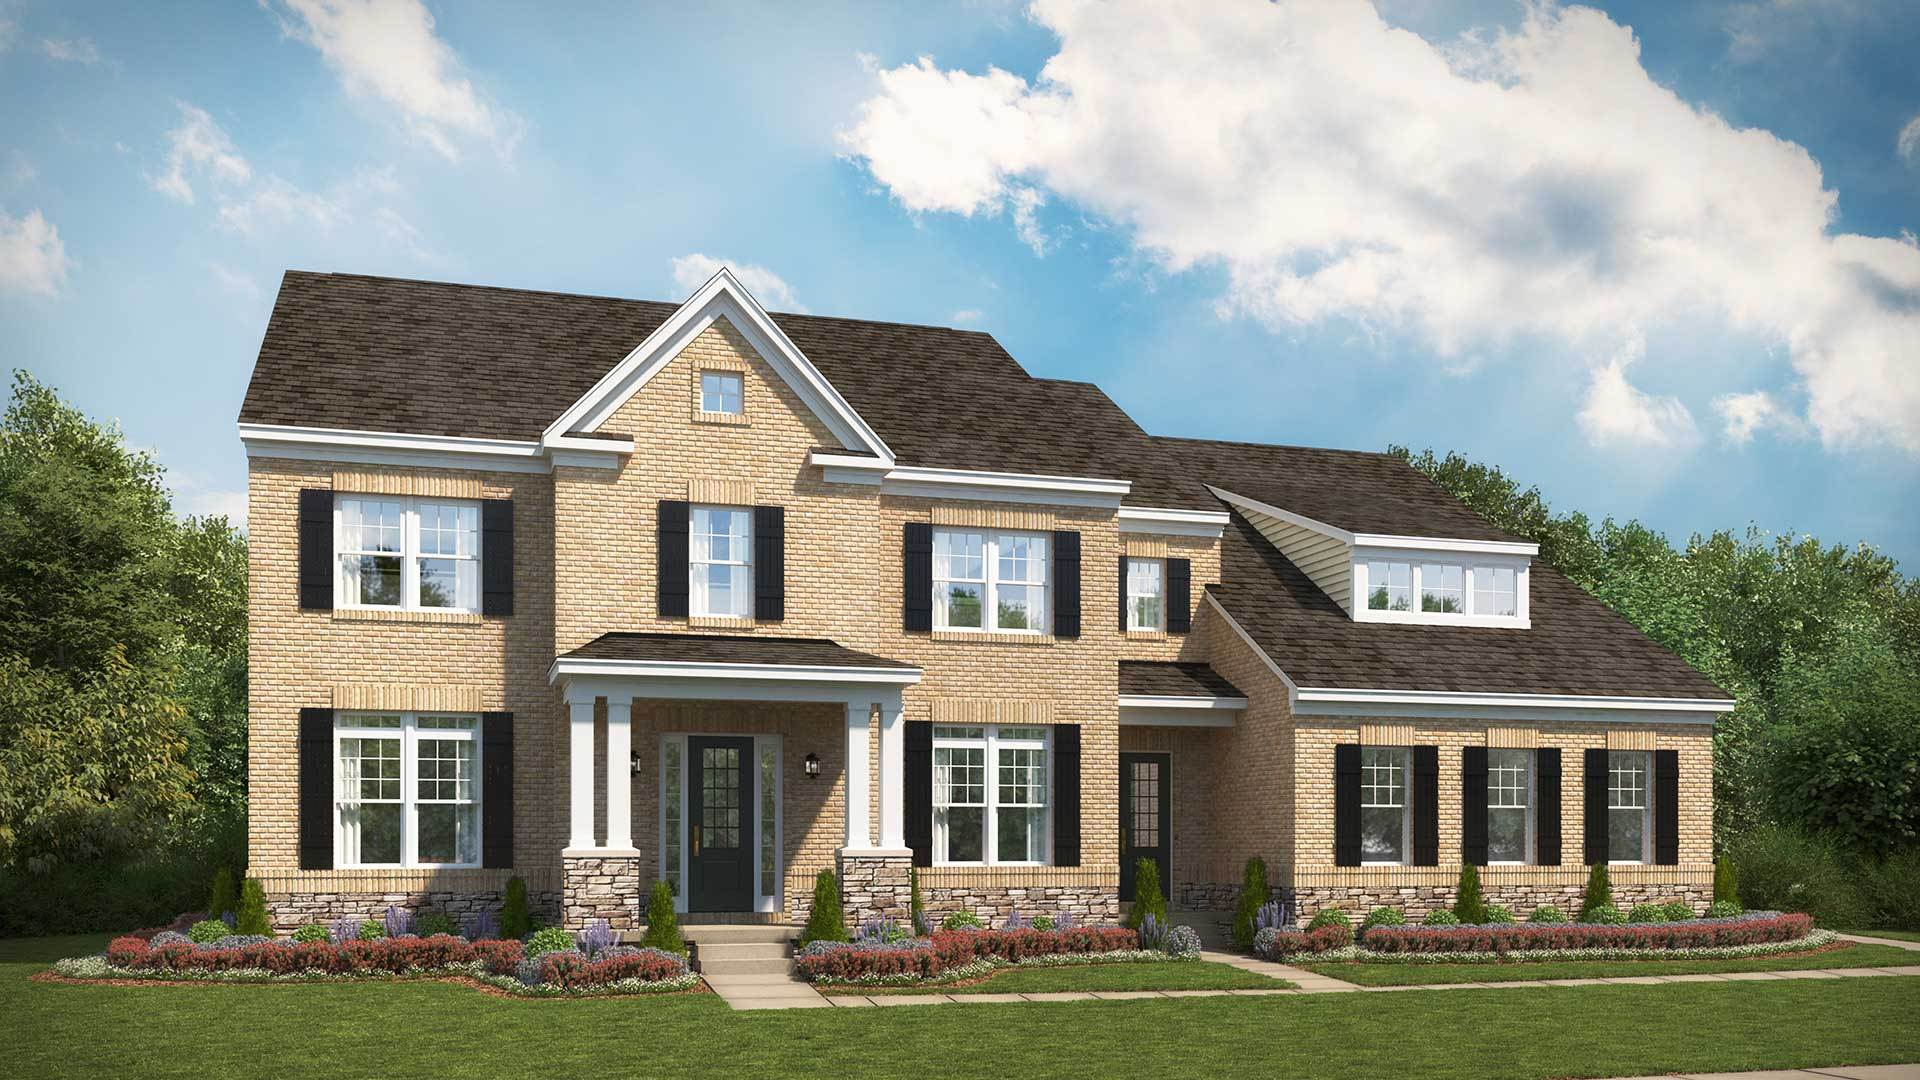 Single Family for Active at Potomac Reserve - Travers 14933 Minnieville Road Manassas, Virginia 20112 United States